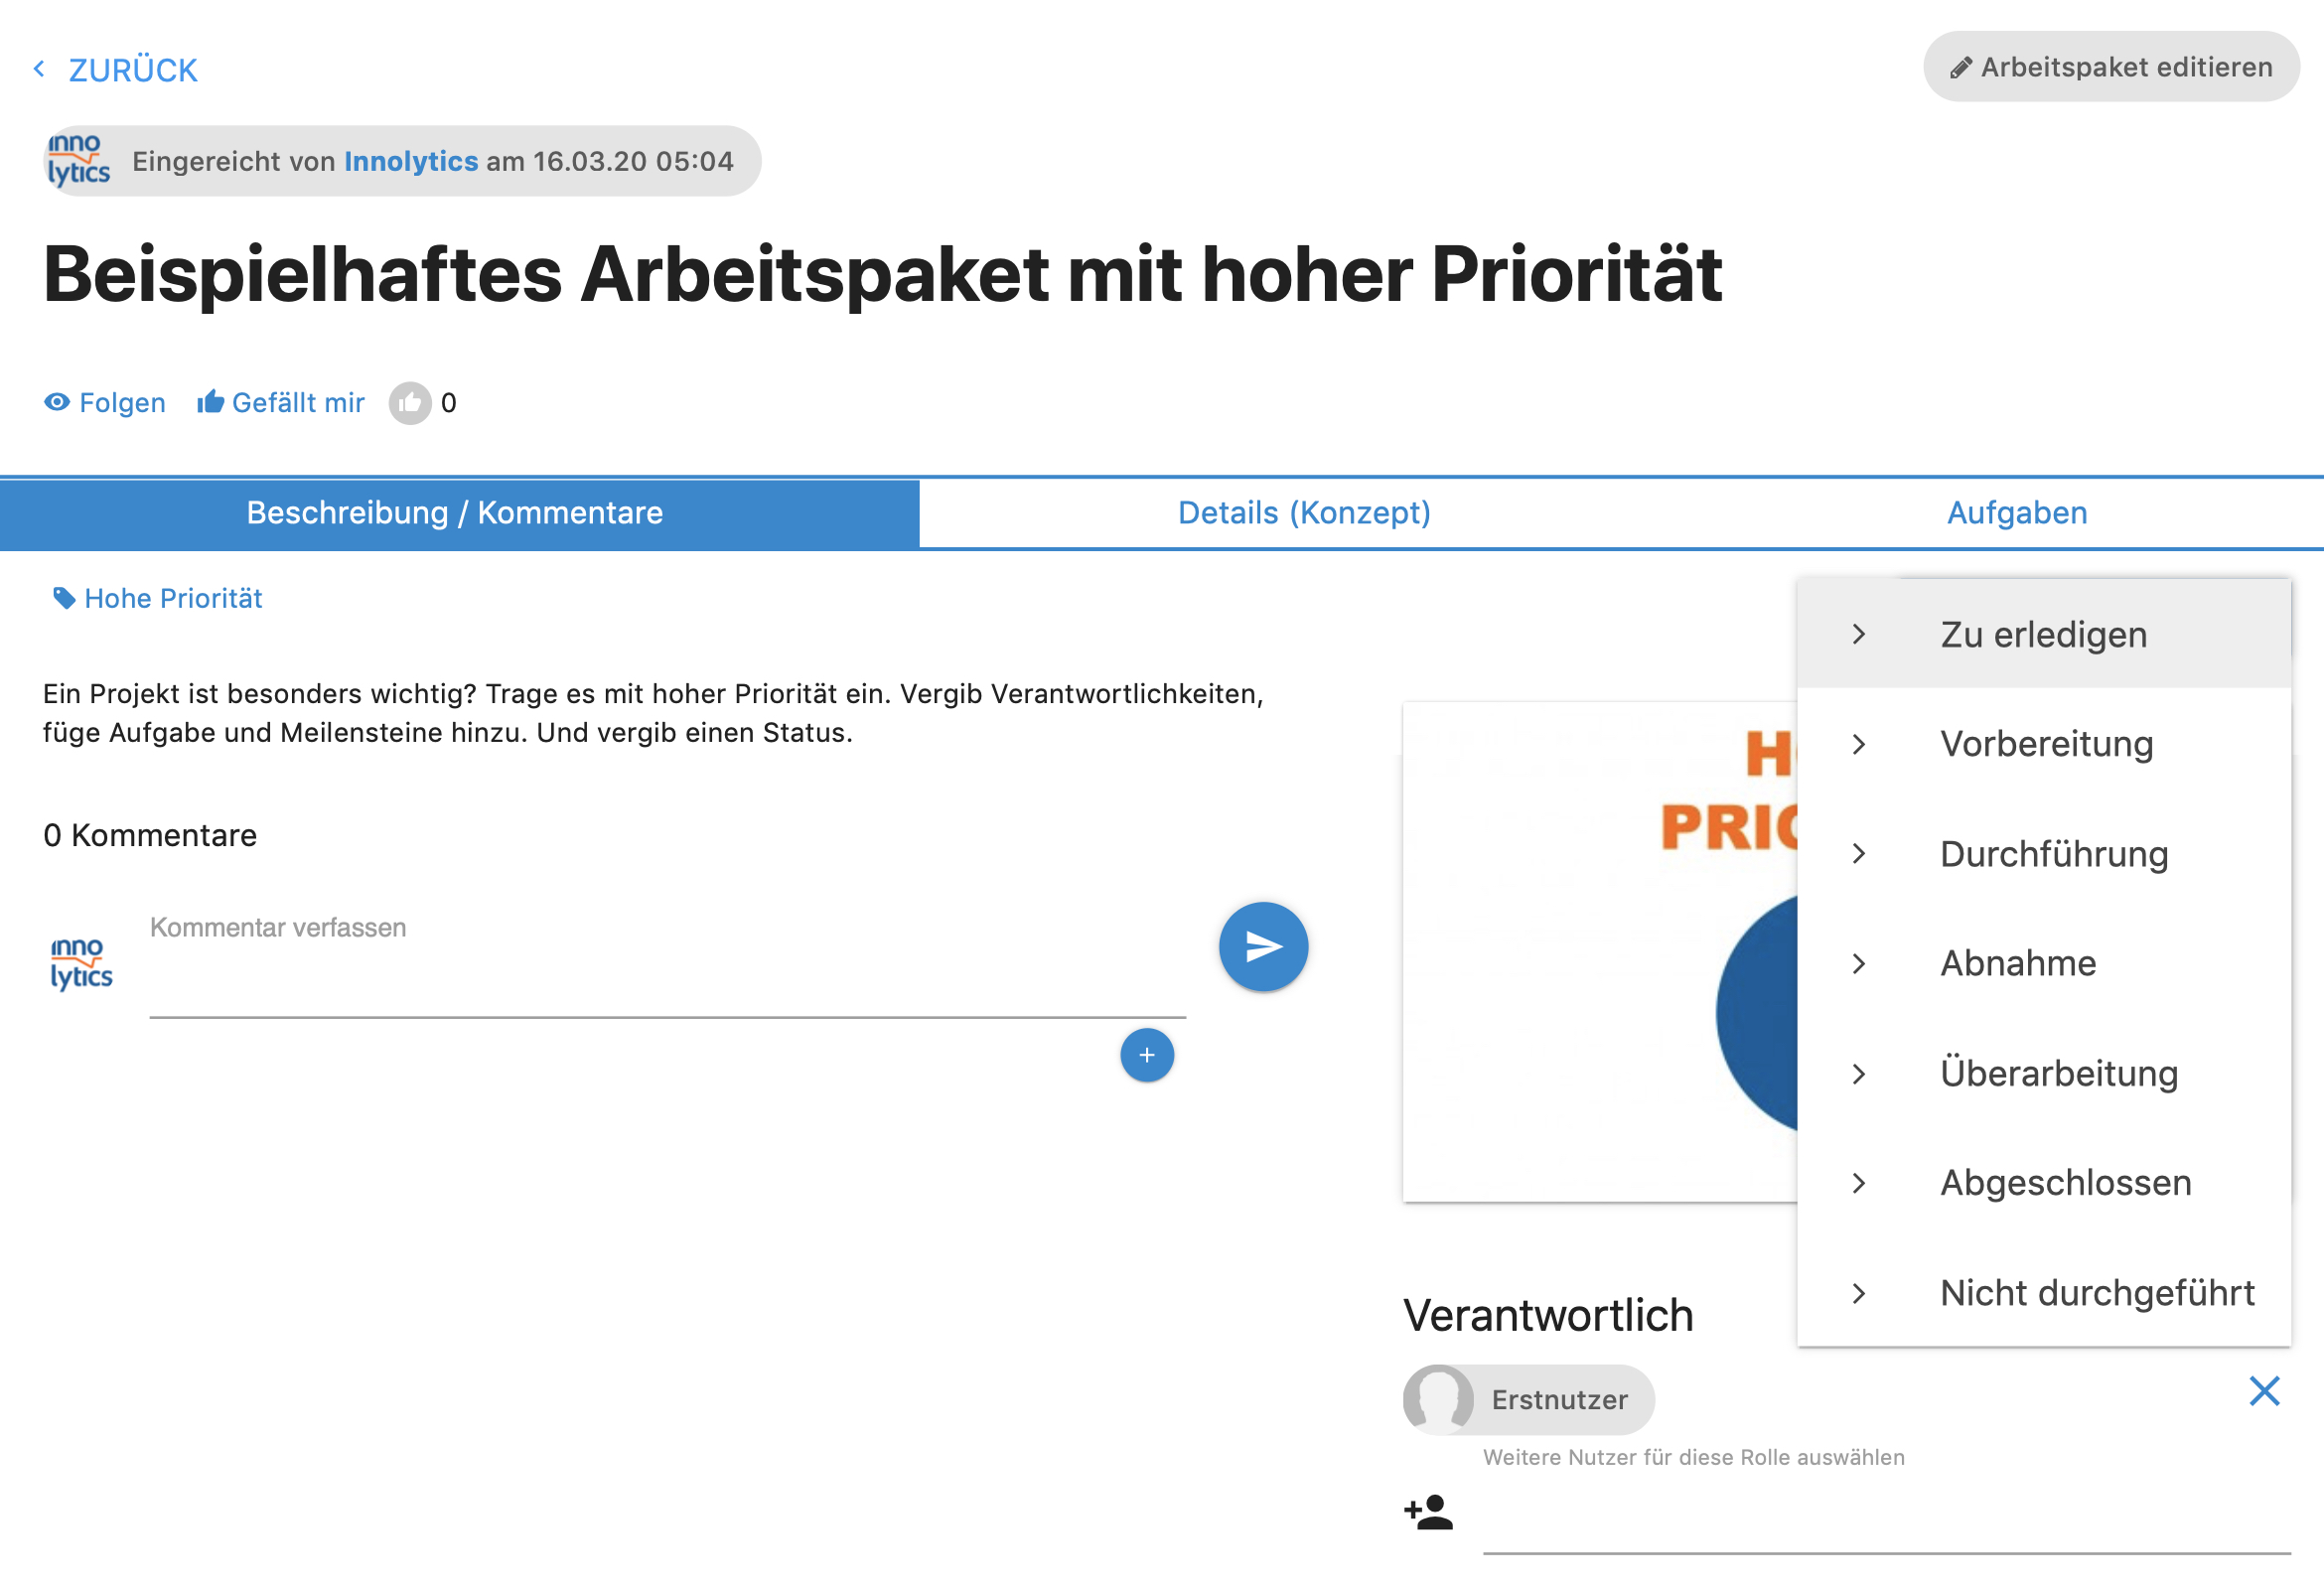 Collaboration Software - Arbeitspaket